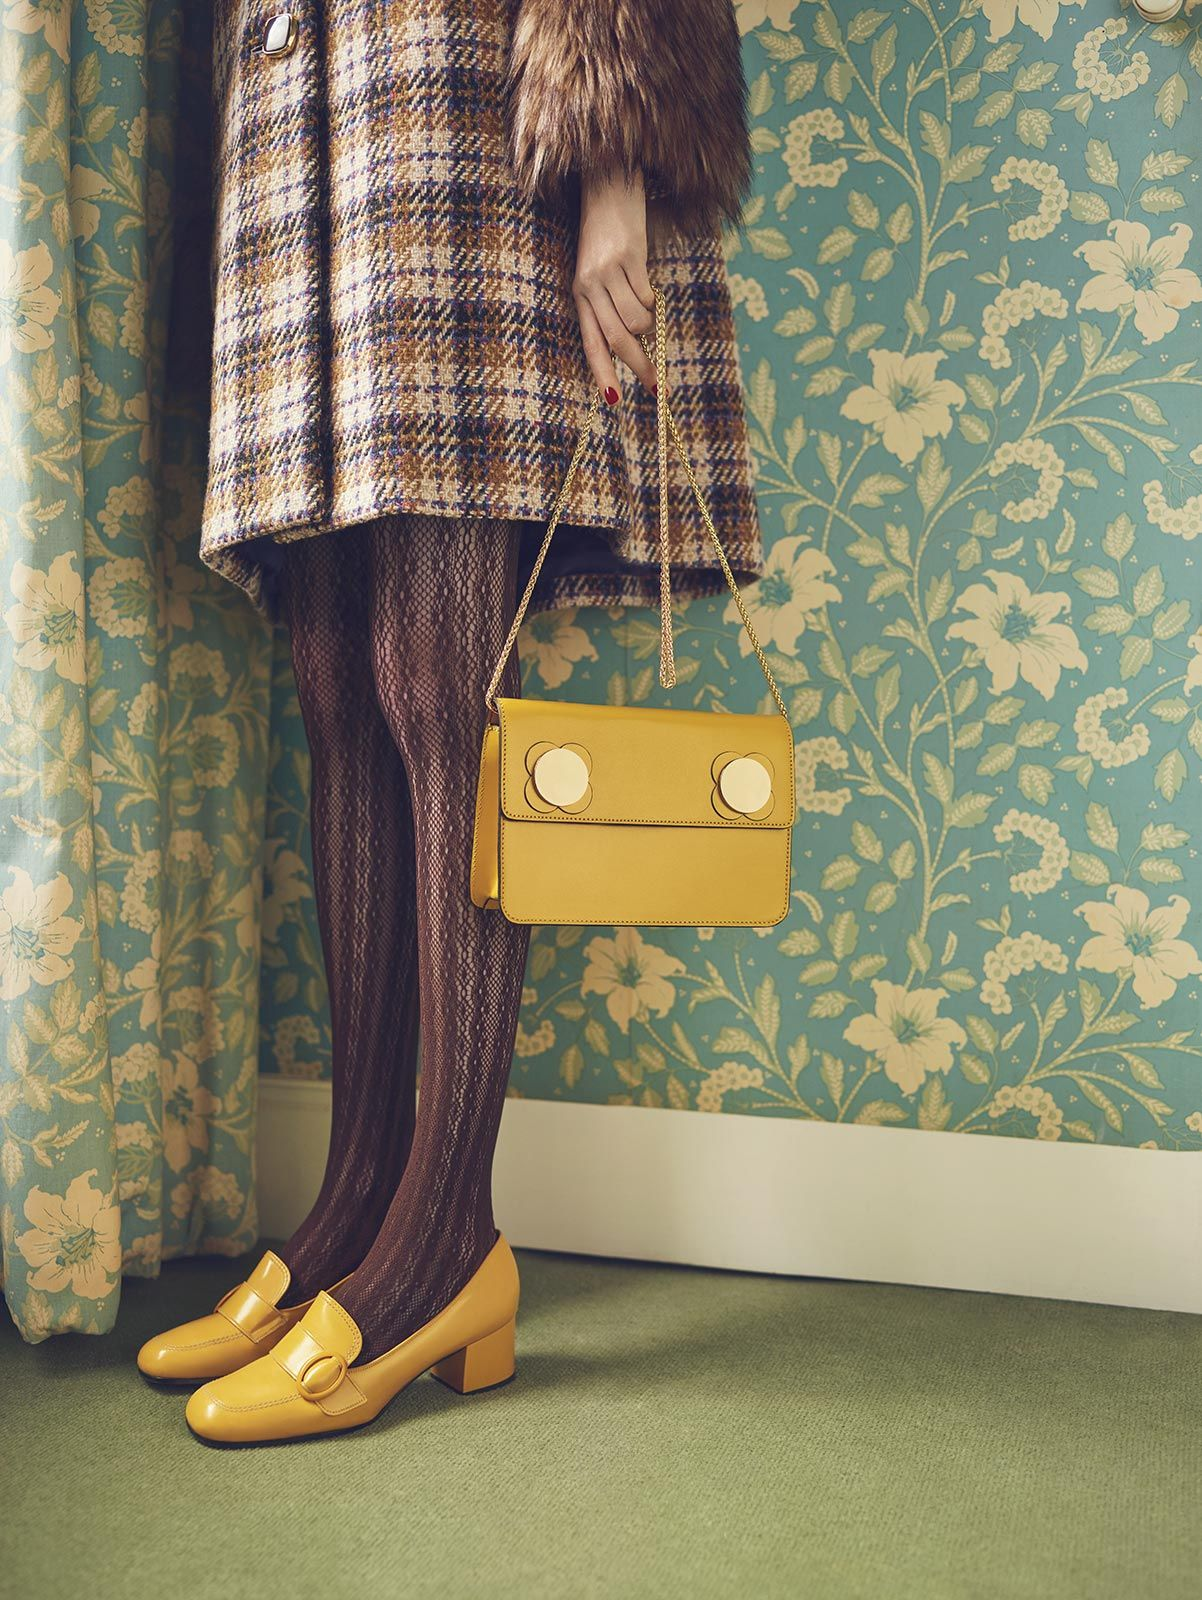 Orla kiely u iconic bags clothing accessories and home in